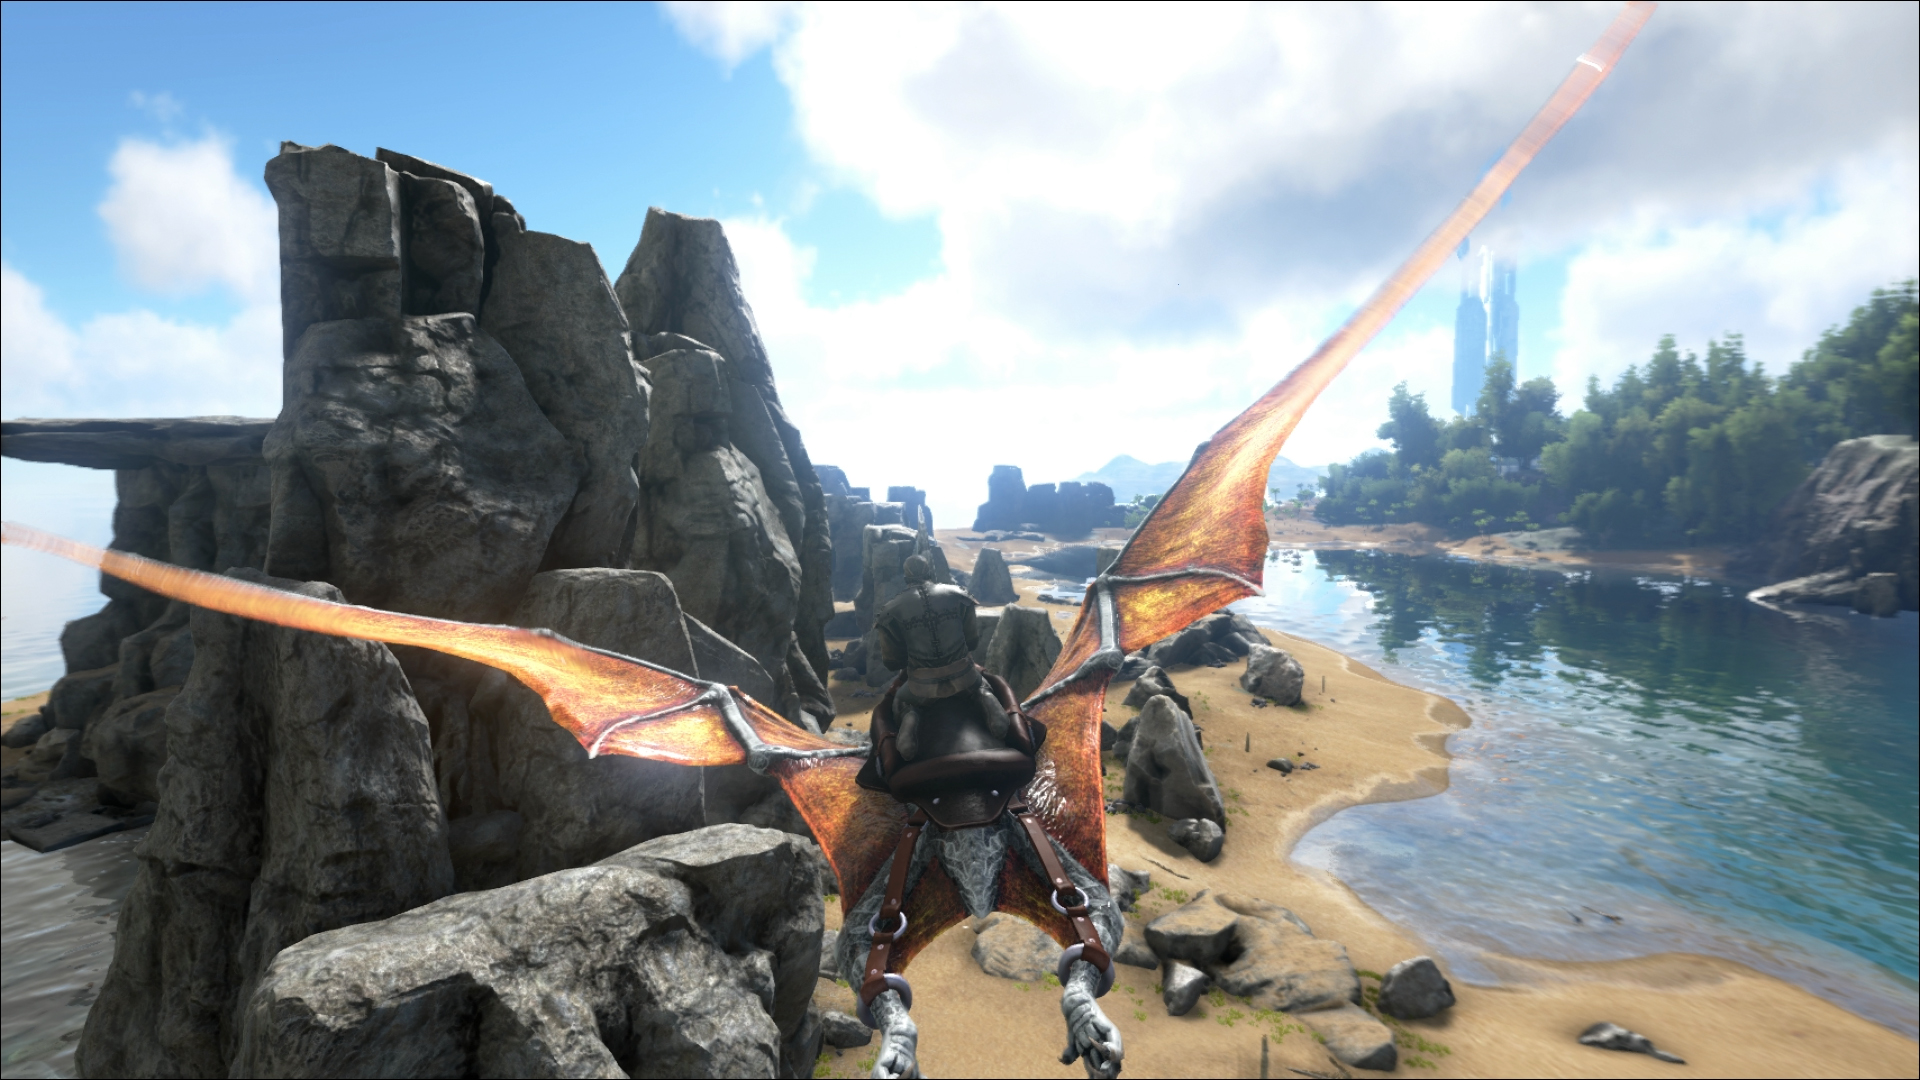 VRゲーム,ARK: Survival Evolved,イメージ